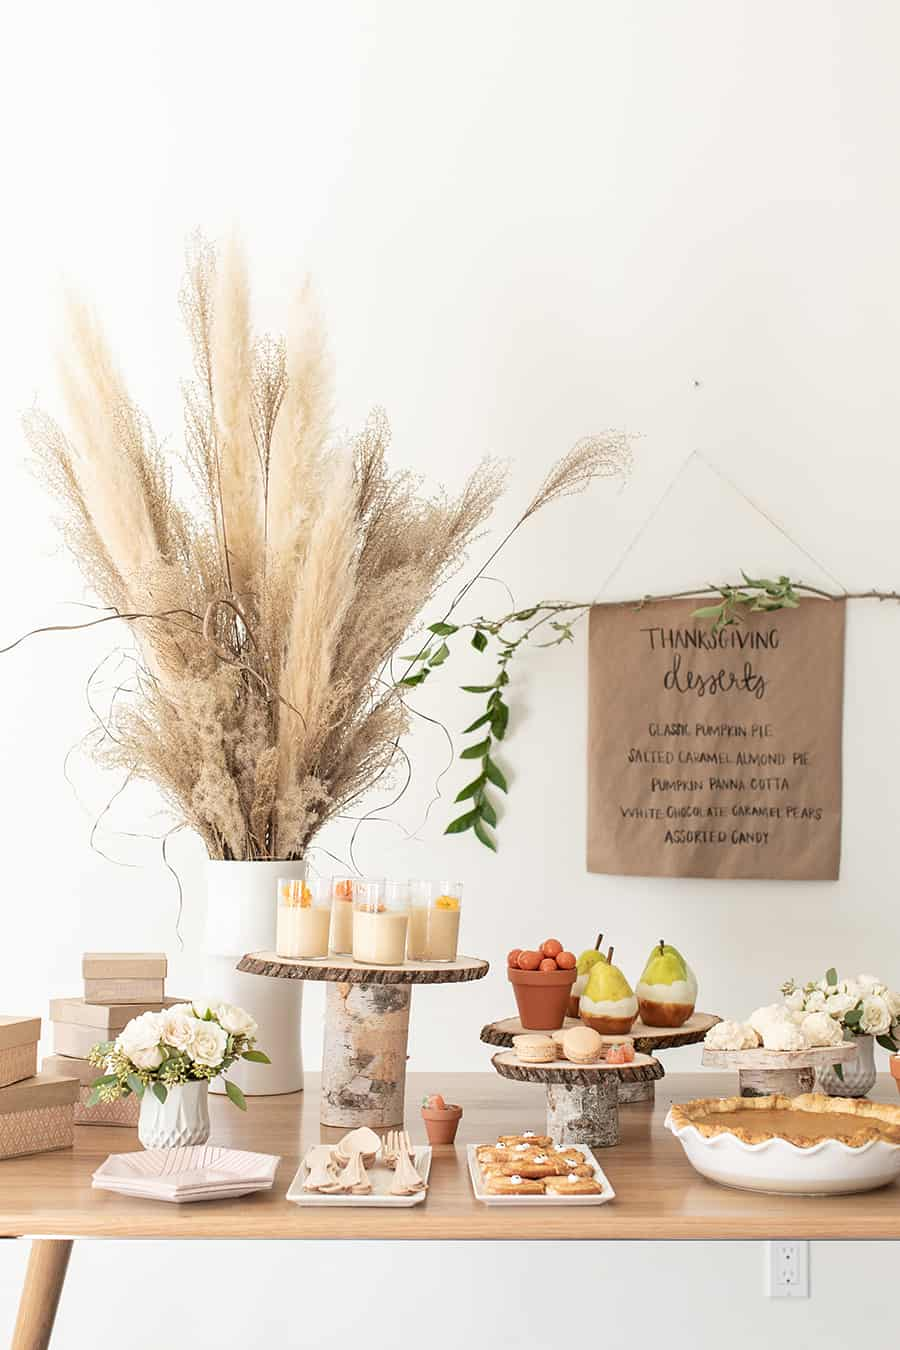 Thanksgiving dessert table with birchwood cake stands and flowers in a white vase.